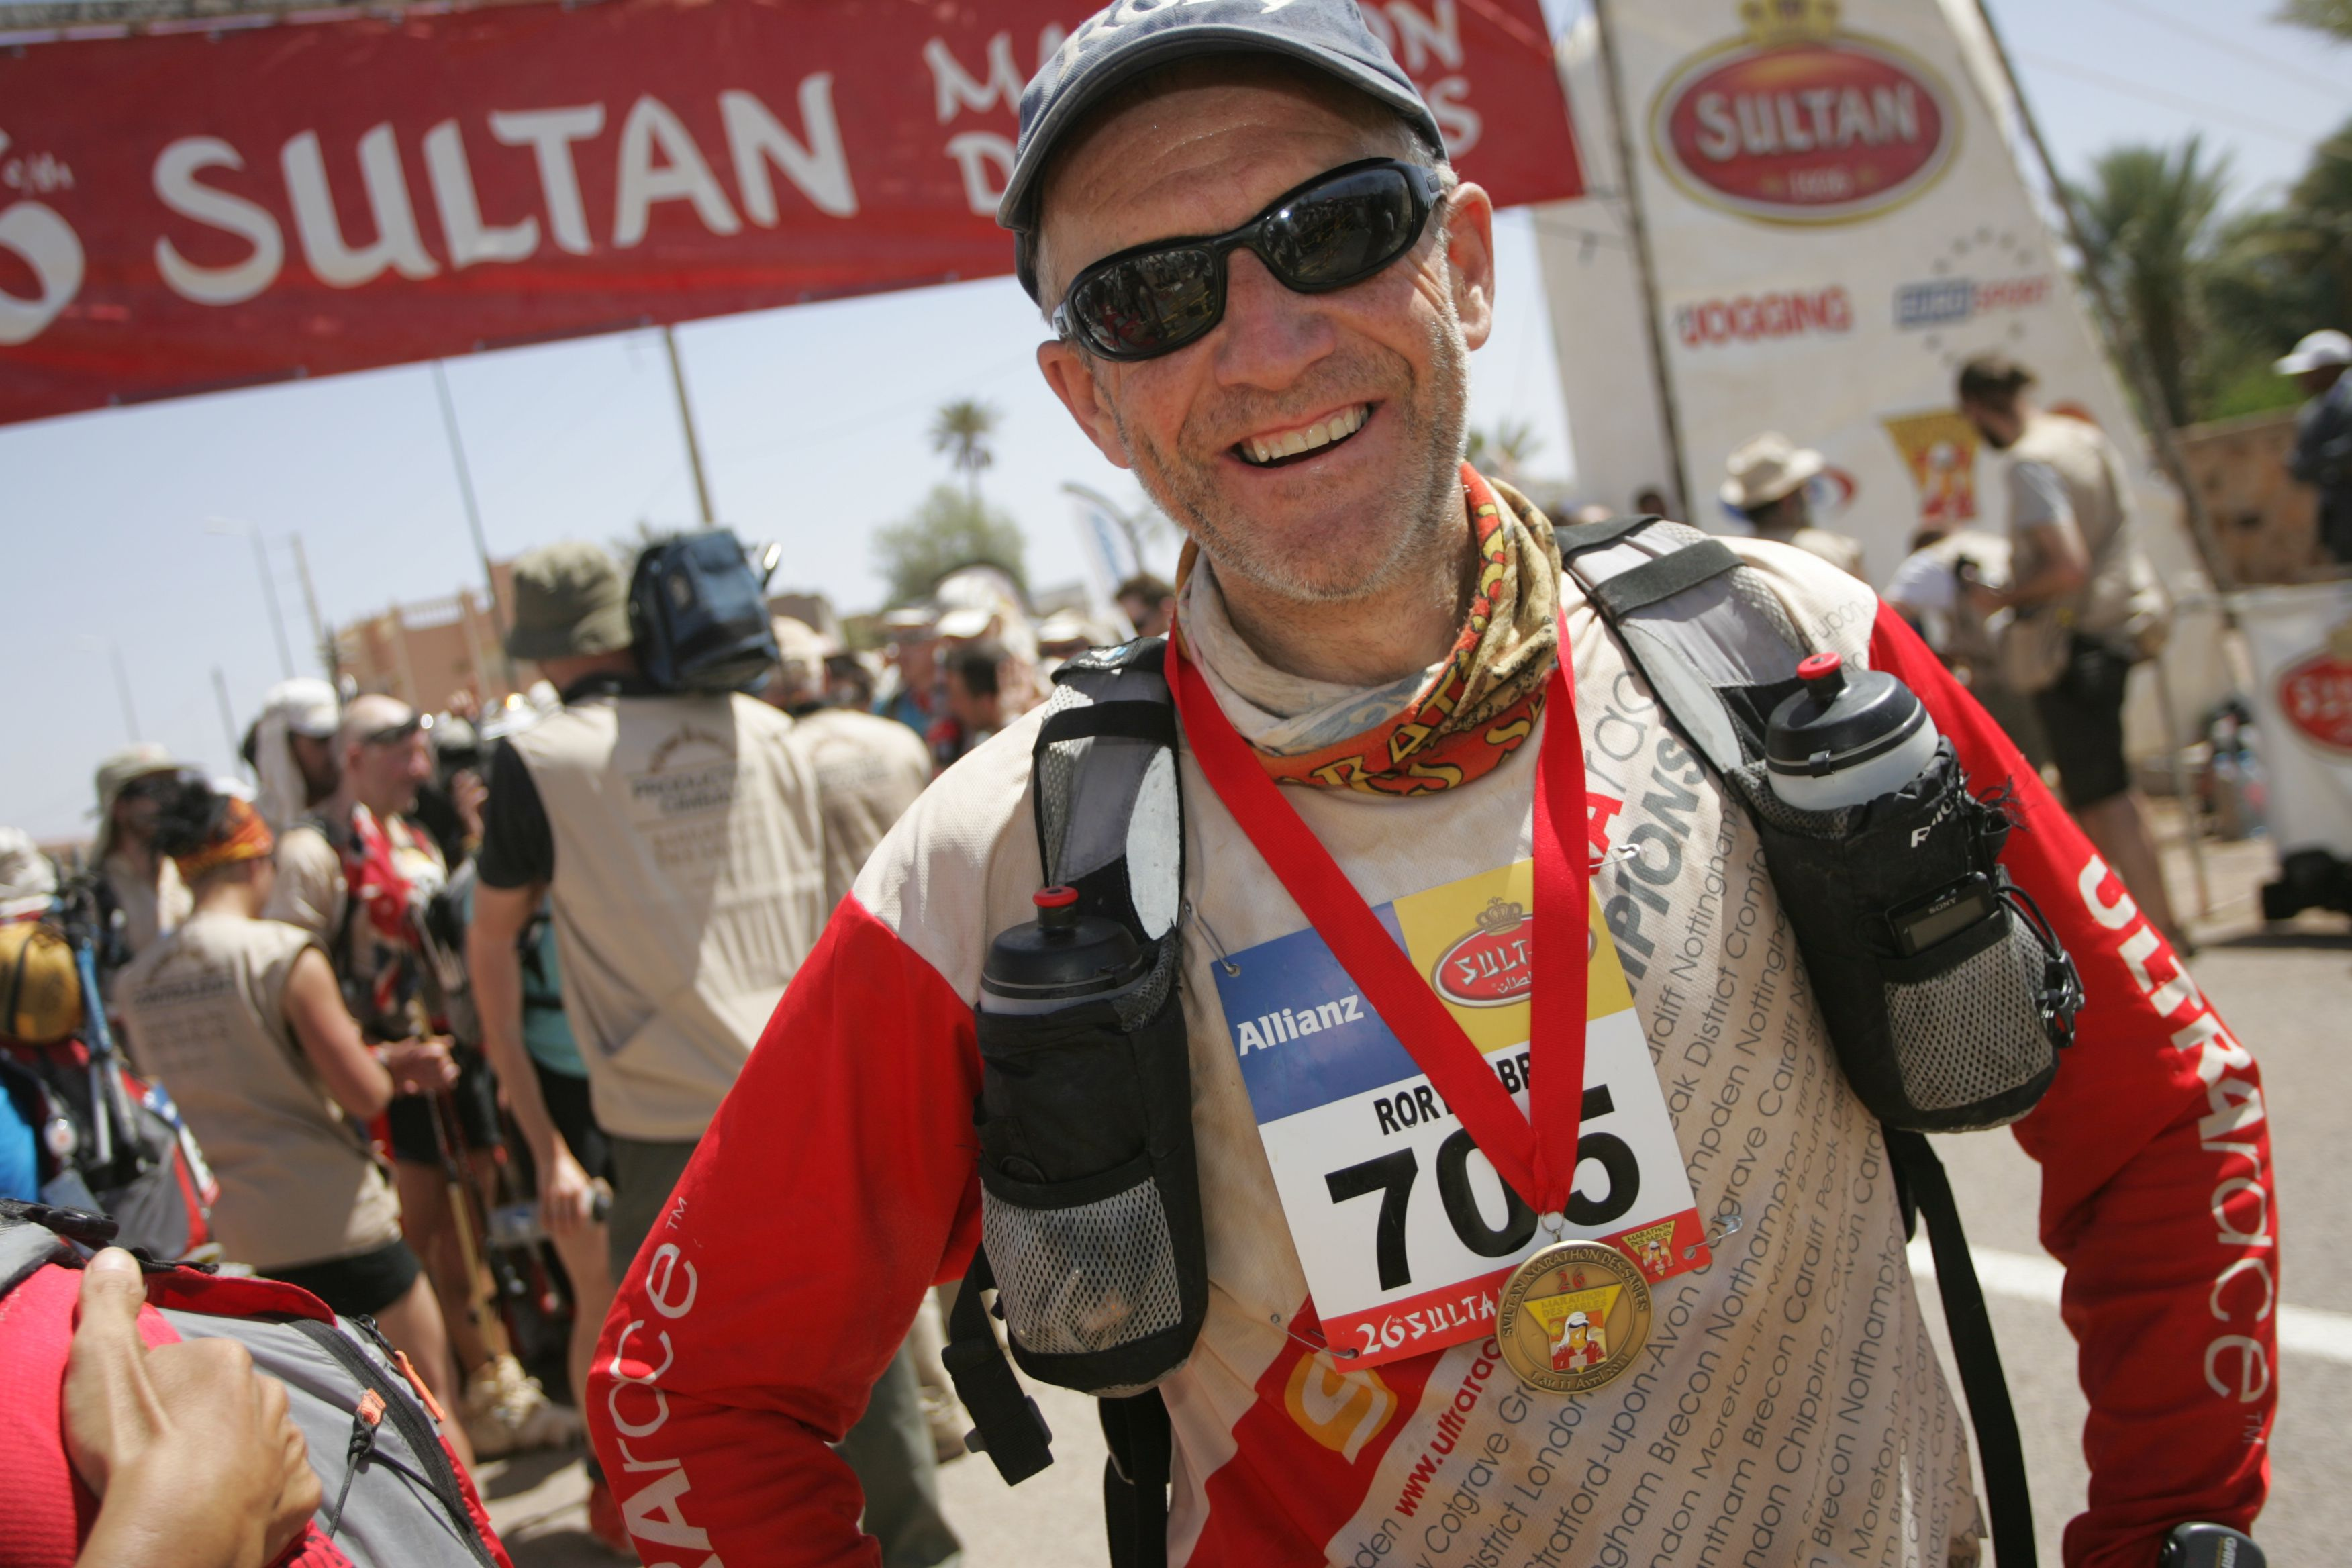 Finish of the 2011 MdS...